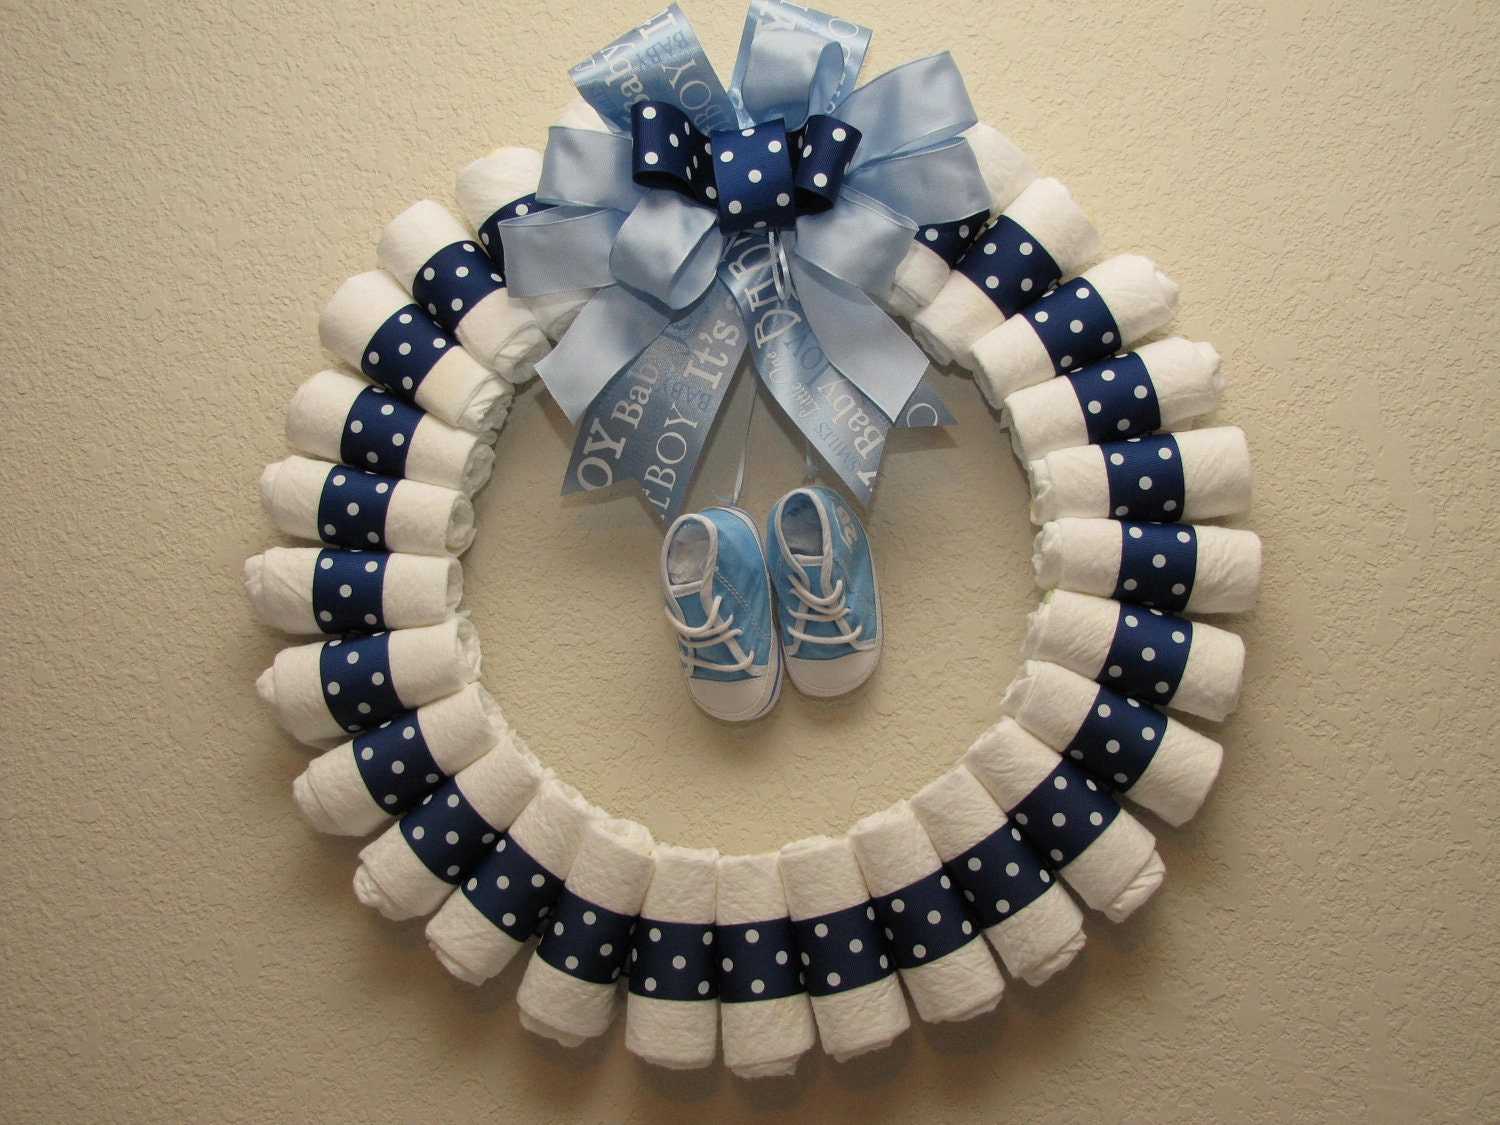 How to make a bow how to instructions - Large Baby Boy Diaper Wreath